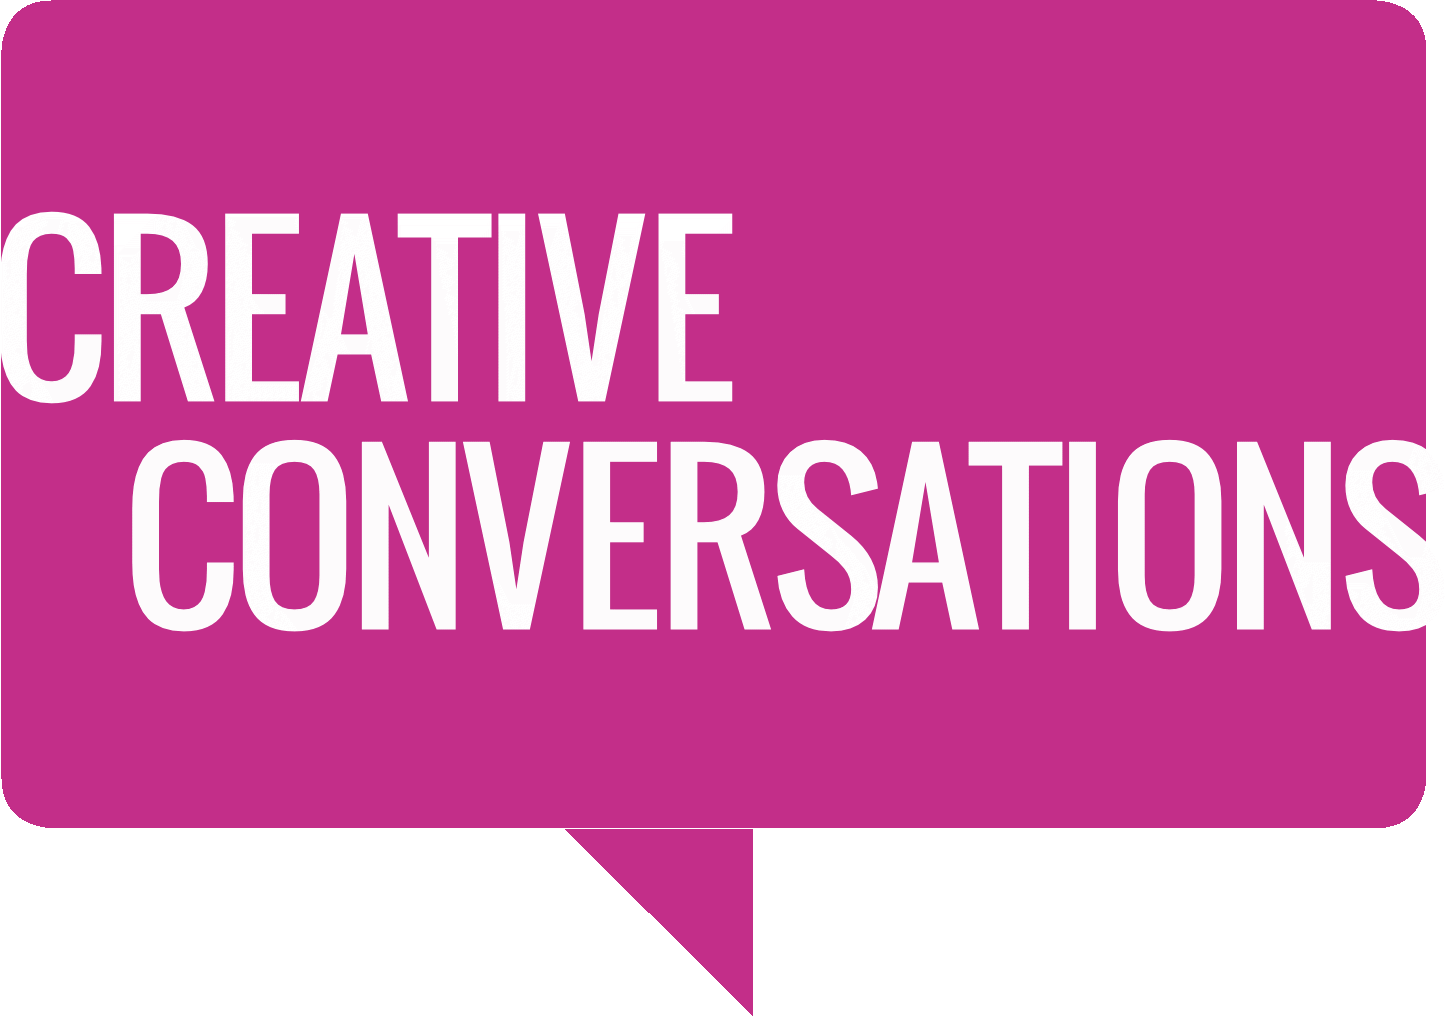 CreativeConversations Graphic.png